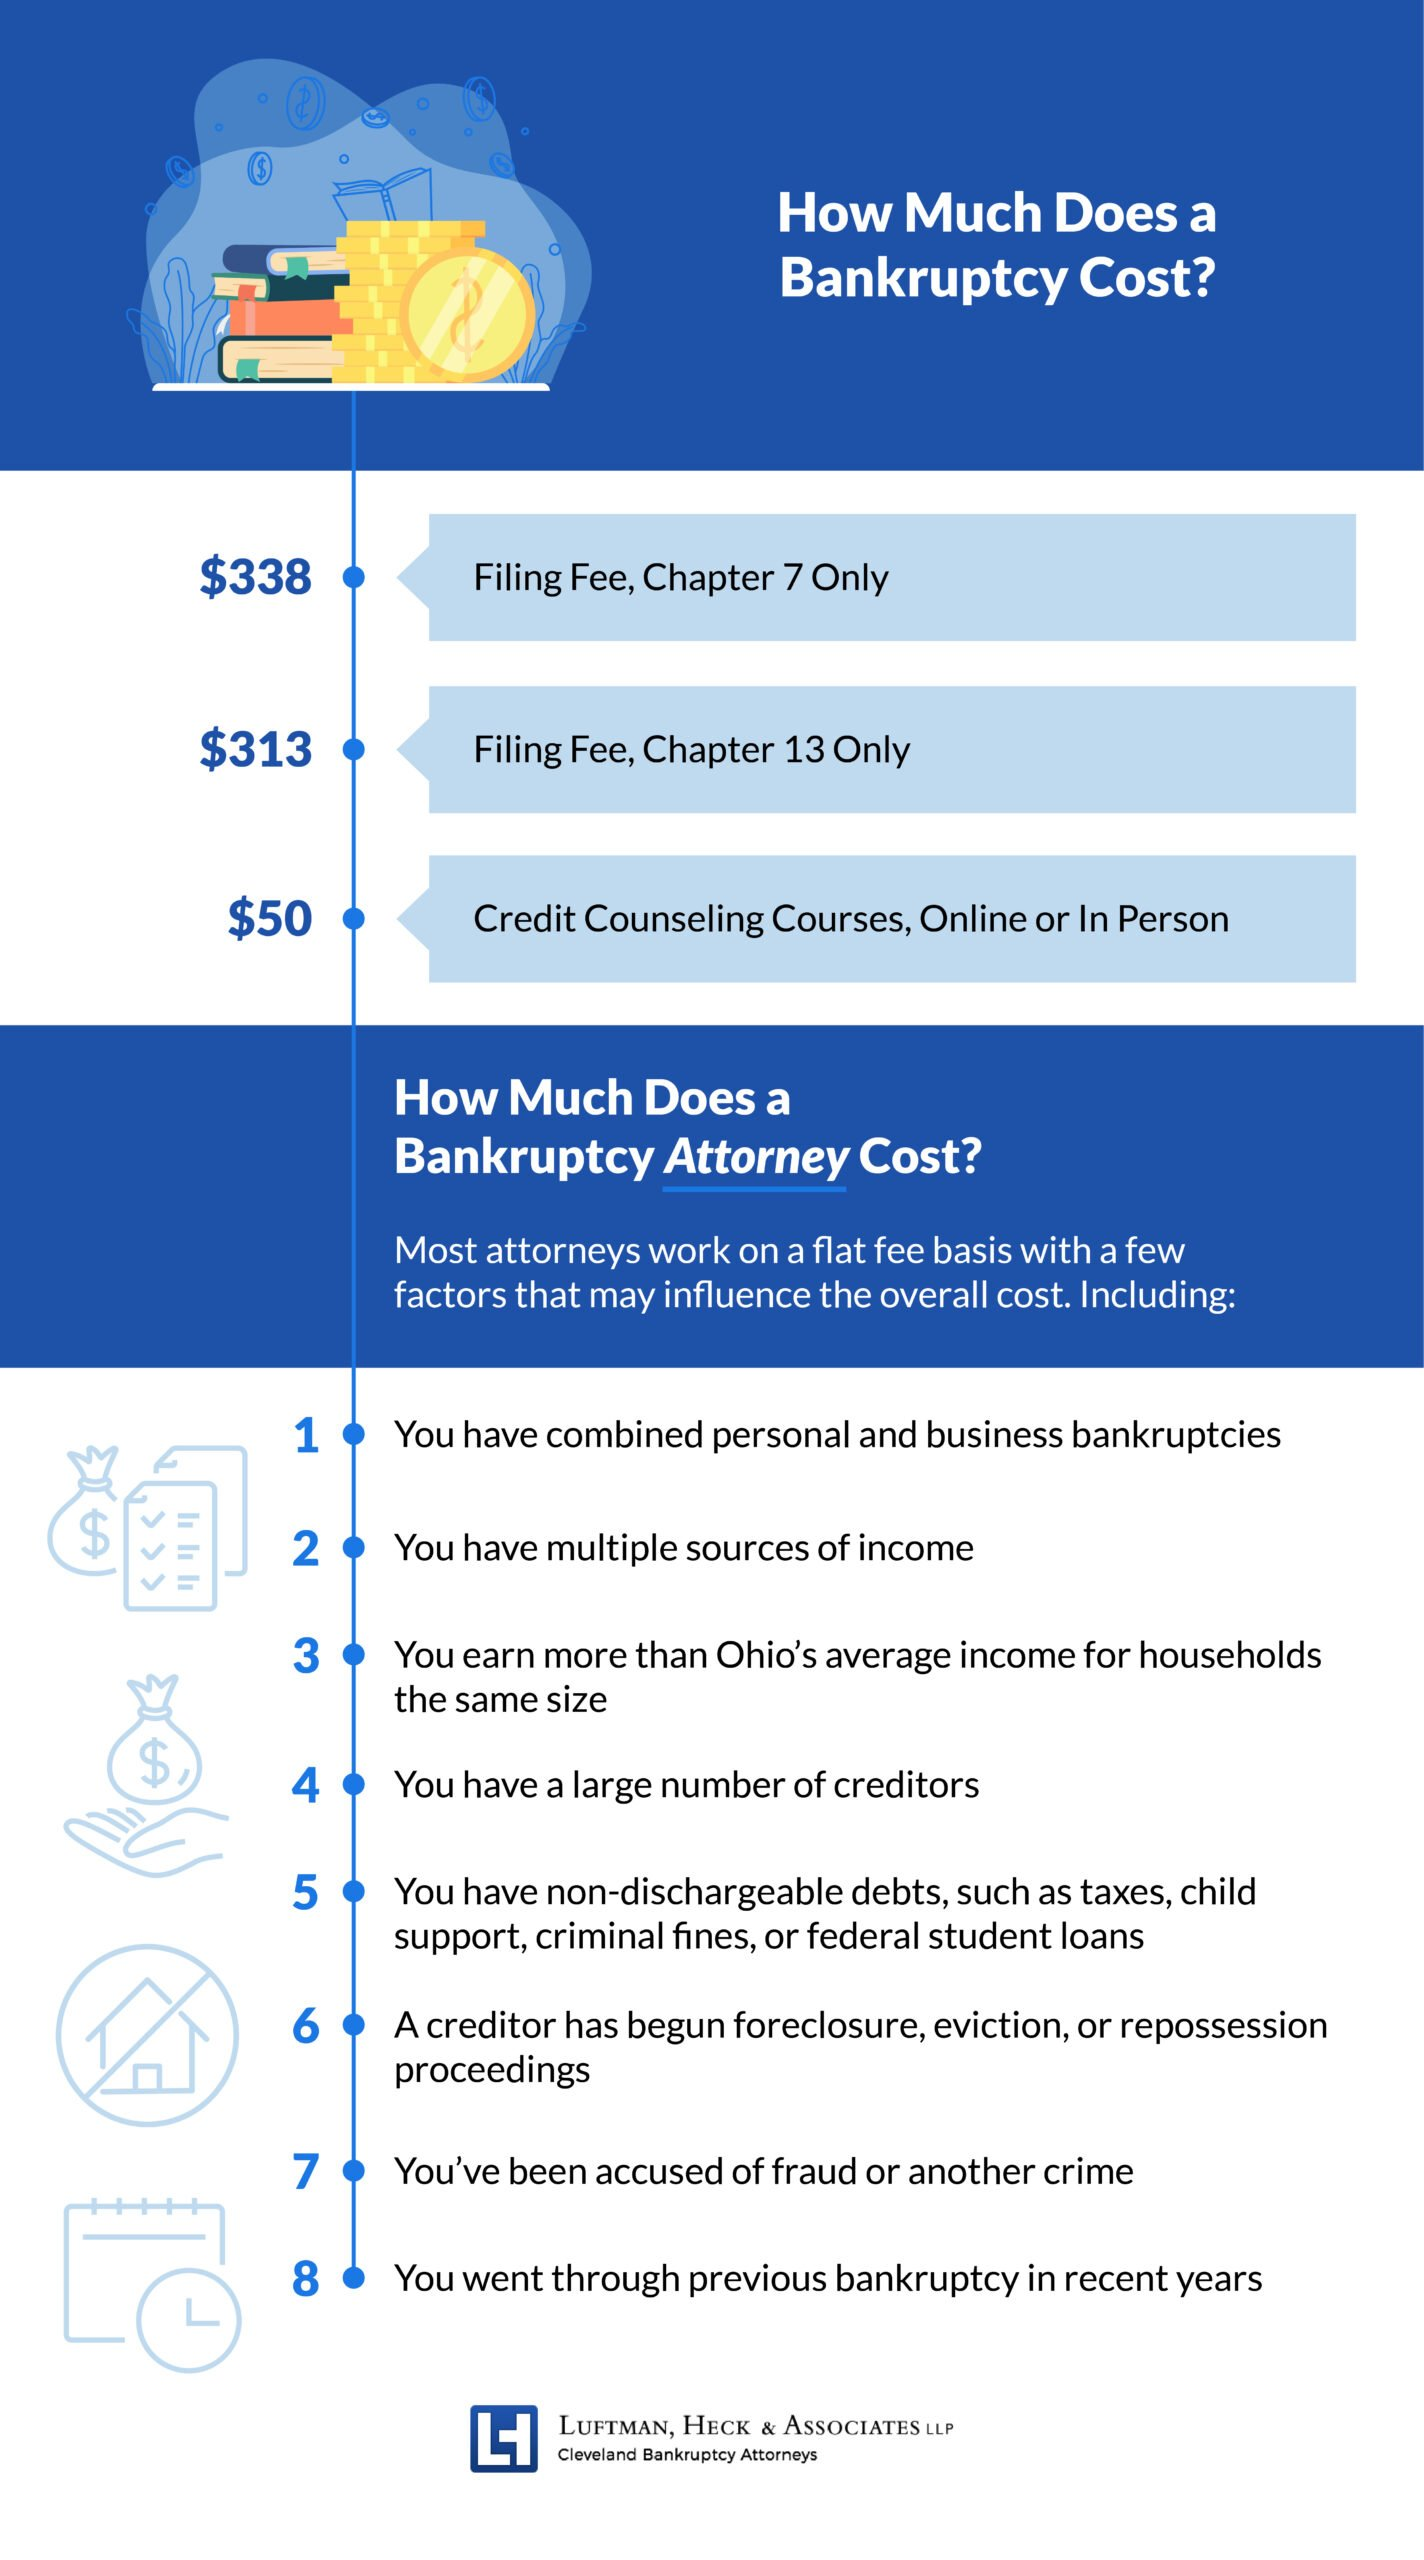 How Much Does a Bankruptcy Attorney Cost?